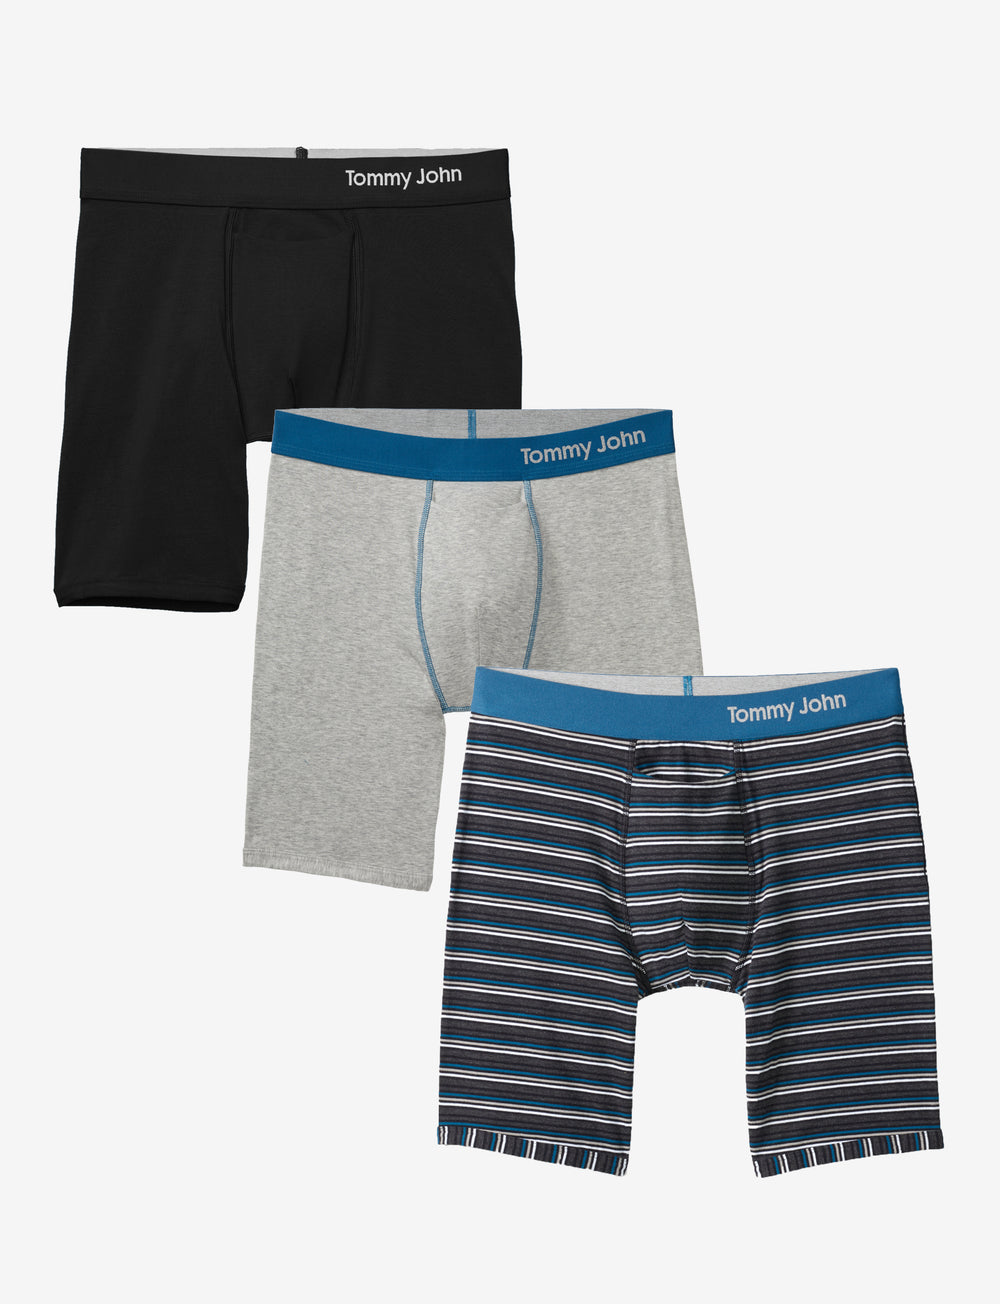 Men's Cool Cotton Boxer Brief Spring Sampler Pack Details Image